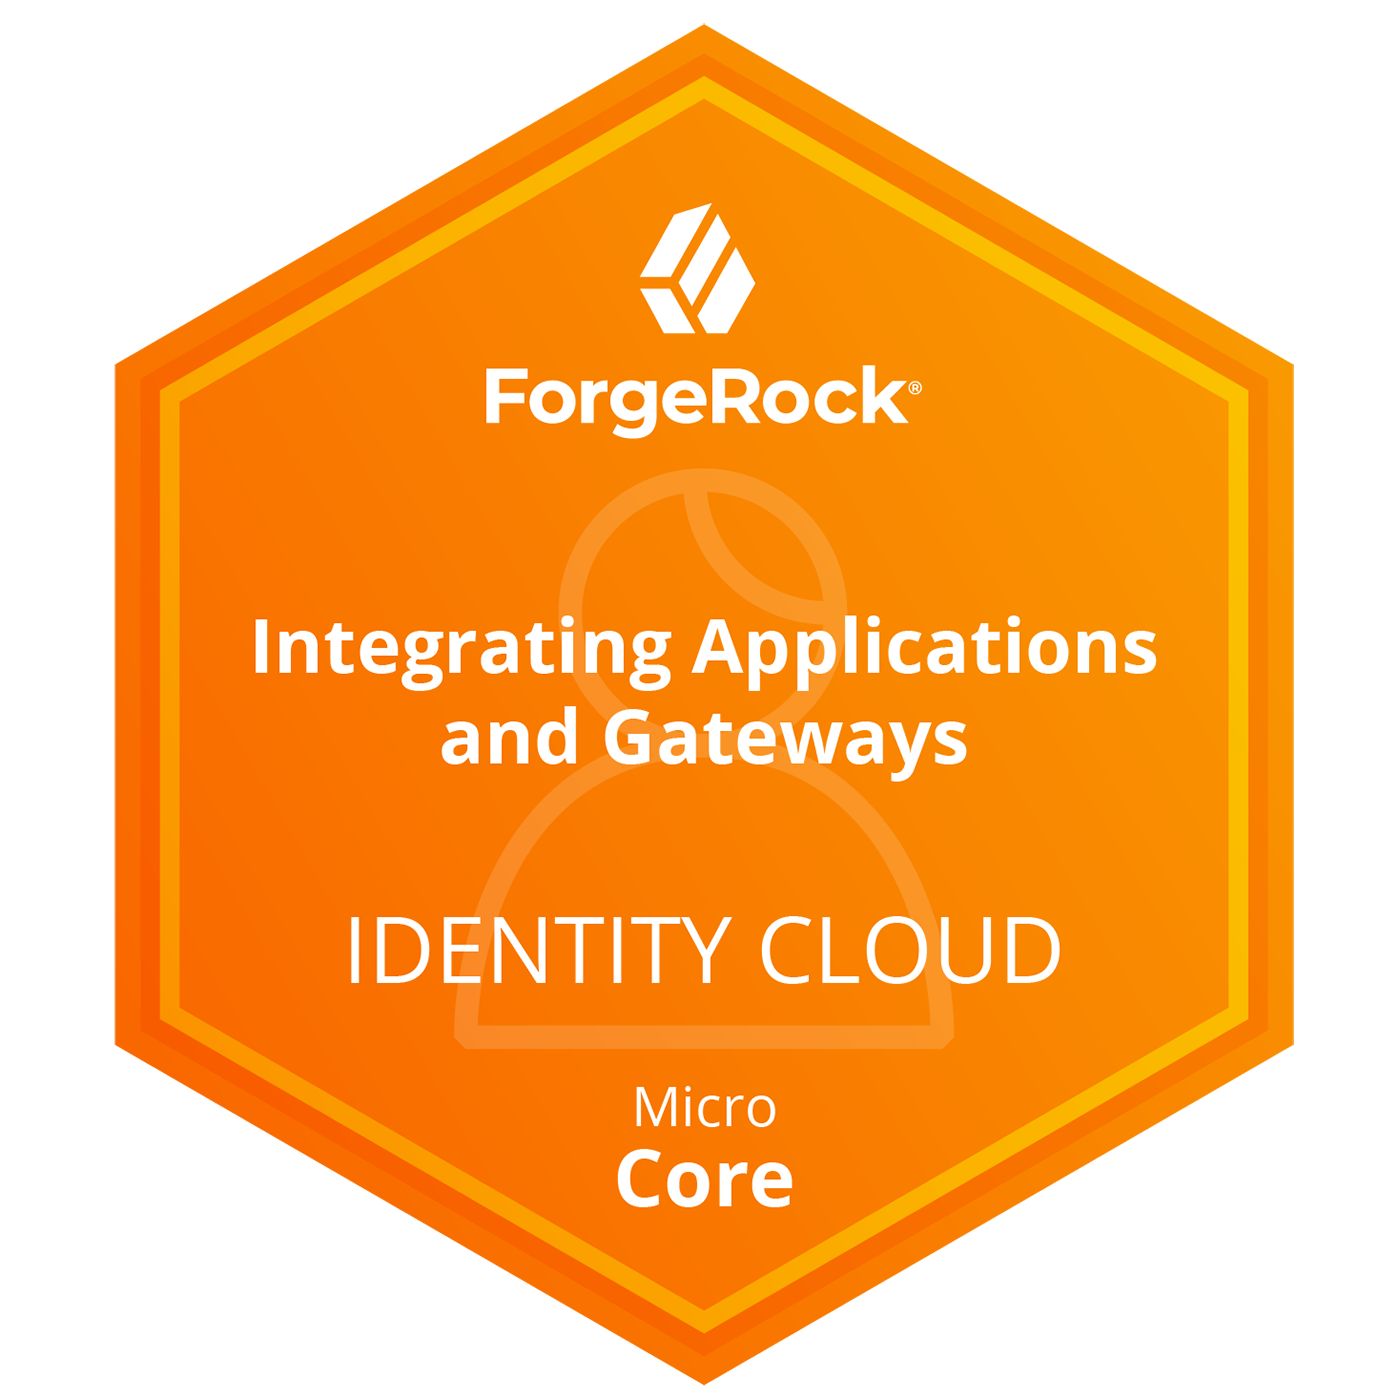 ForgeRock Identity Cloud Micro Core Skills - Integrating Applications and Gateways